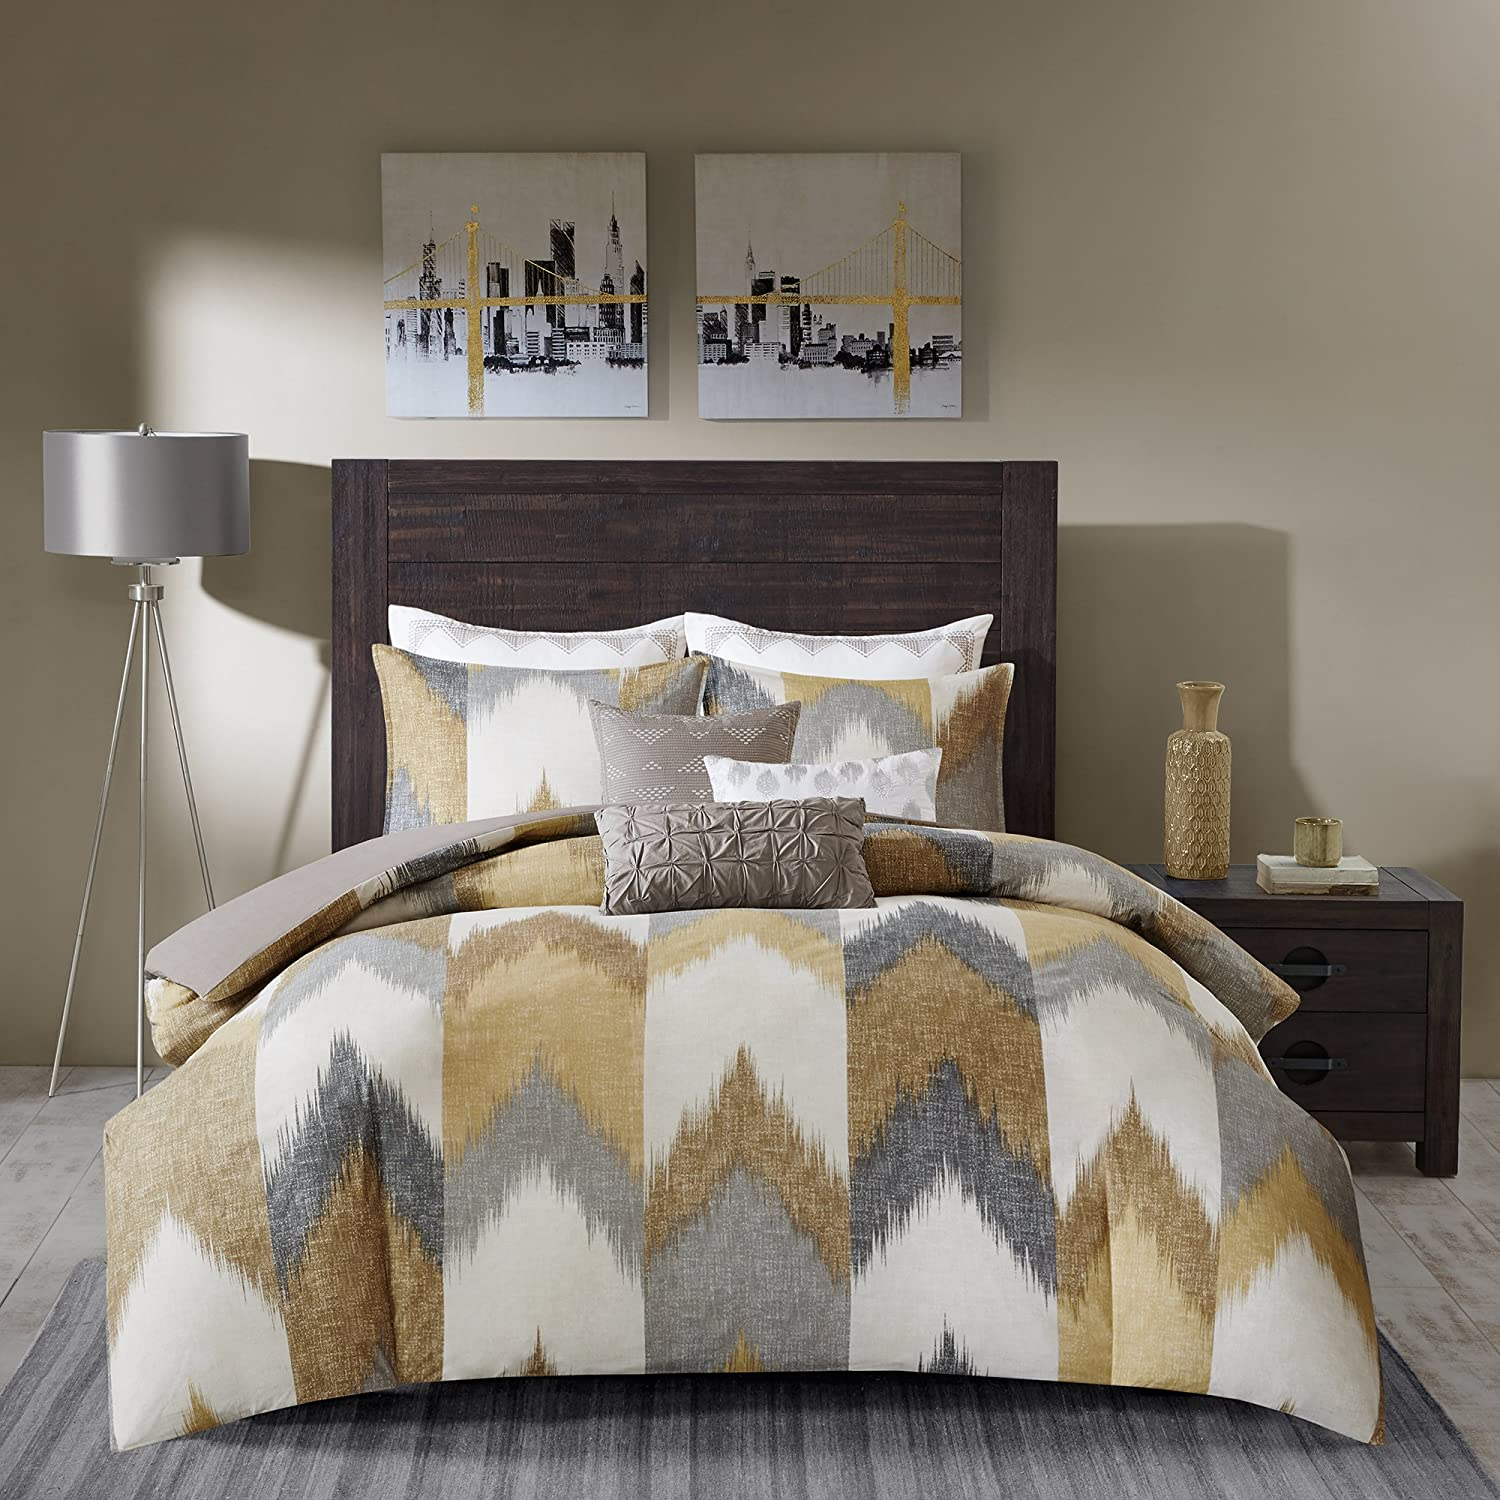 INK+IVY Alpine Full/Queen Size Bed Comforter Set - Yellow, Taupe, Grey, Ivory, Pieced Chevron – 3 Pieces Bedding Sets – 100% Cotton Bedroom